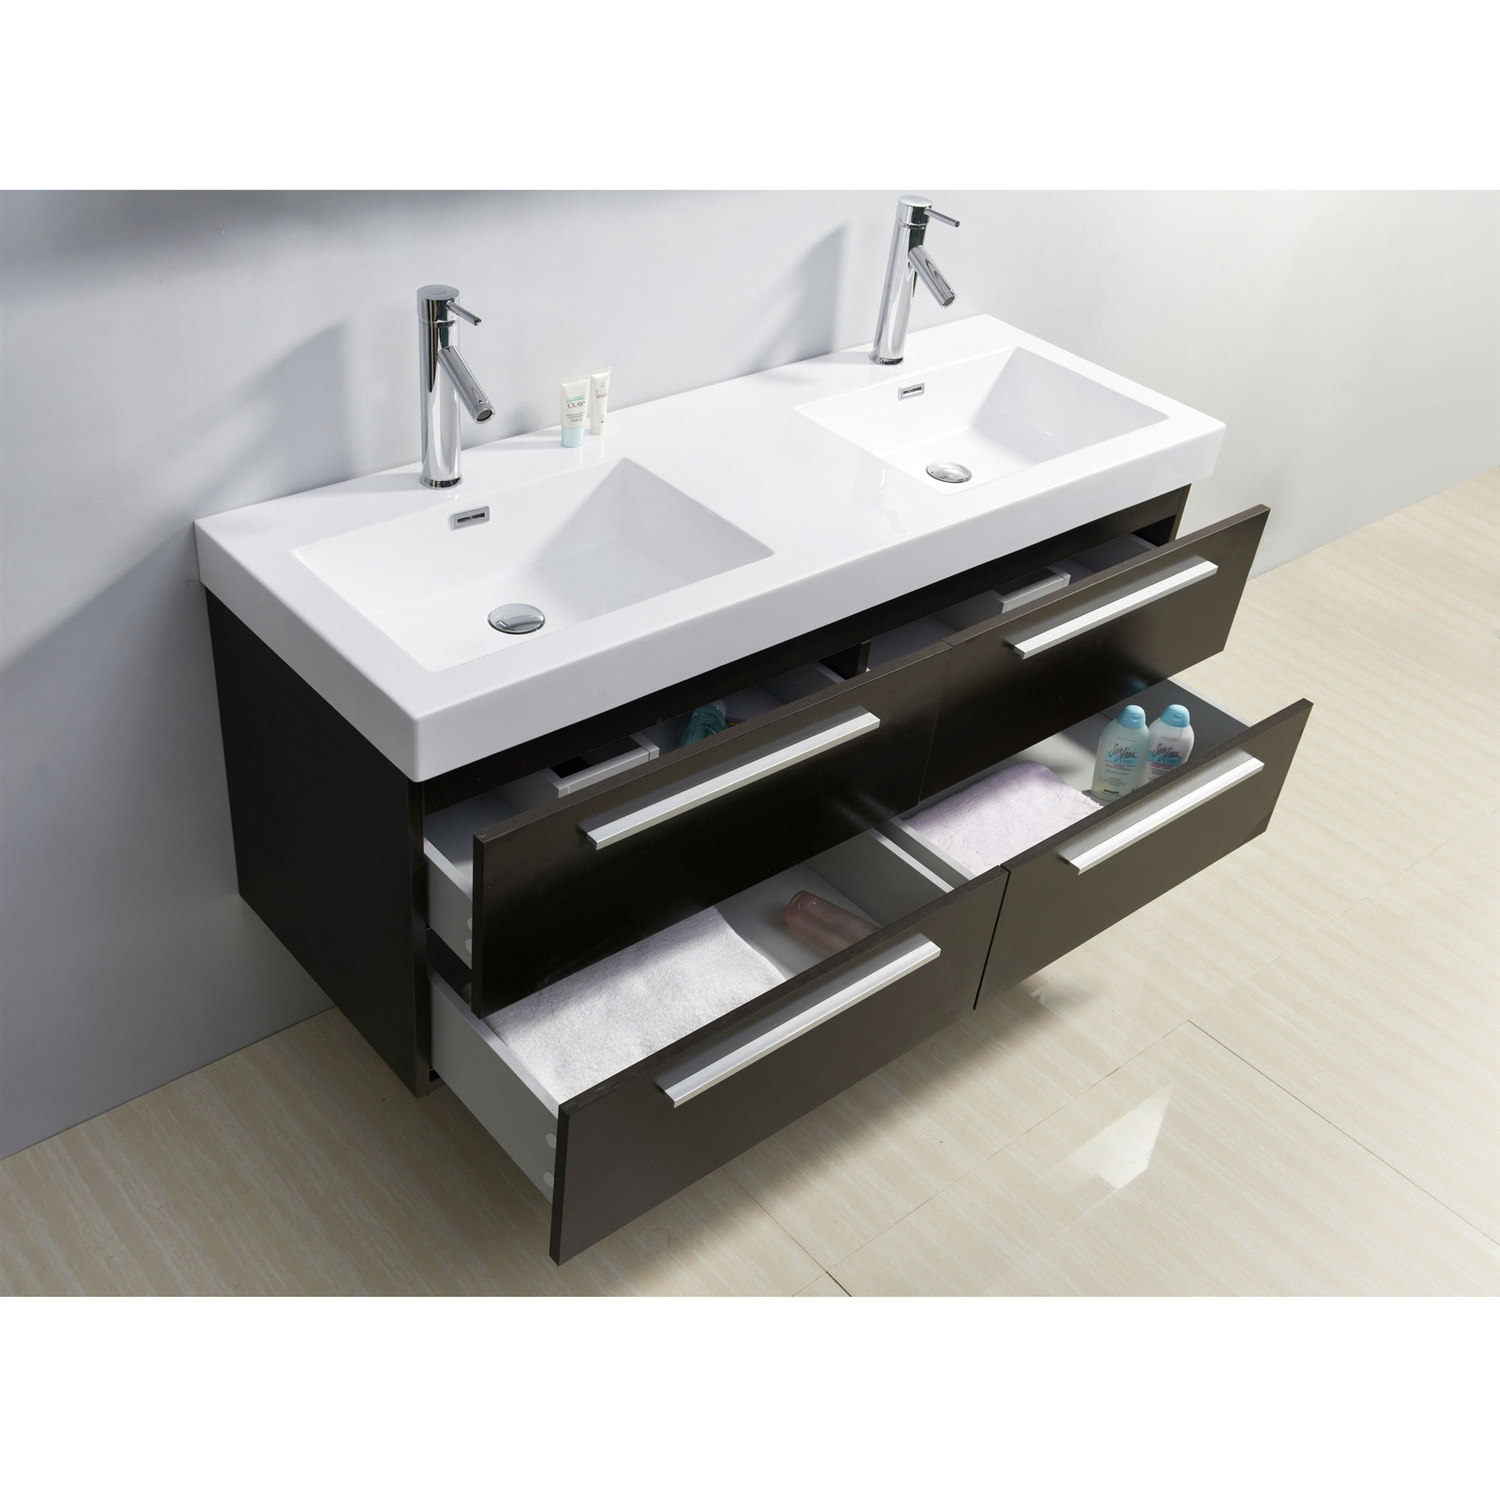 "53.9-inch Double Bathroom Vanity in Wenge with Modern Poly Marble Sink, VF539656 :  This 53.9-inch Double Bathroom Vanity in Wenge with Modern Poly Marble Sink is the very definition of quality and elegance wrapped in an ultra-modern design. Featuring four spacious drawers all mounted on soft closing slides, a high gloss poly marble sink for an easy clean, and a finish that will look marvelous for years to come. If you're looking for a vanity to impress any guest of any caliber look no further as the Finley is it. We has taken the initiative by changing the vanity industry and adding soft closing doors and drawers to their entire product line. By doing so, it will give their customers benefits ranging from safety, health, and the vanity's reliability. Plywood and composite with melamine; Single hole faucet 1.2"" diameter; Wall mount; Chrome faucets included (model number: PS-103); 4 Drawers with soft closing slides; Style: Modern; Sink Type: Drop in Top; Finish: White; Base Material: Manufactured wood; Number of Sinks: 2; Mounting: Wall mount; Doors Included: Yes; Drawers Included: Yes; Sink Included: Yes; Faucet Included: Yes."